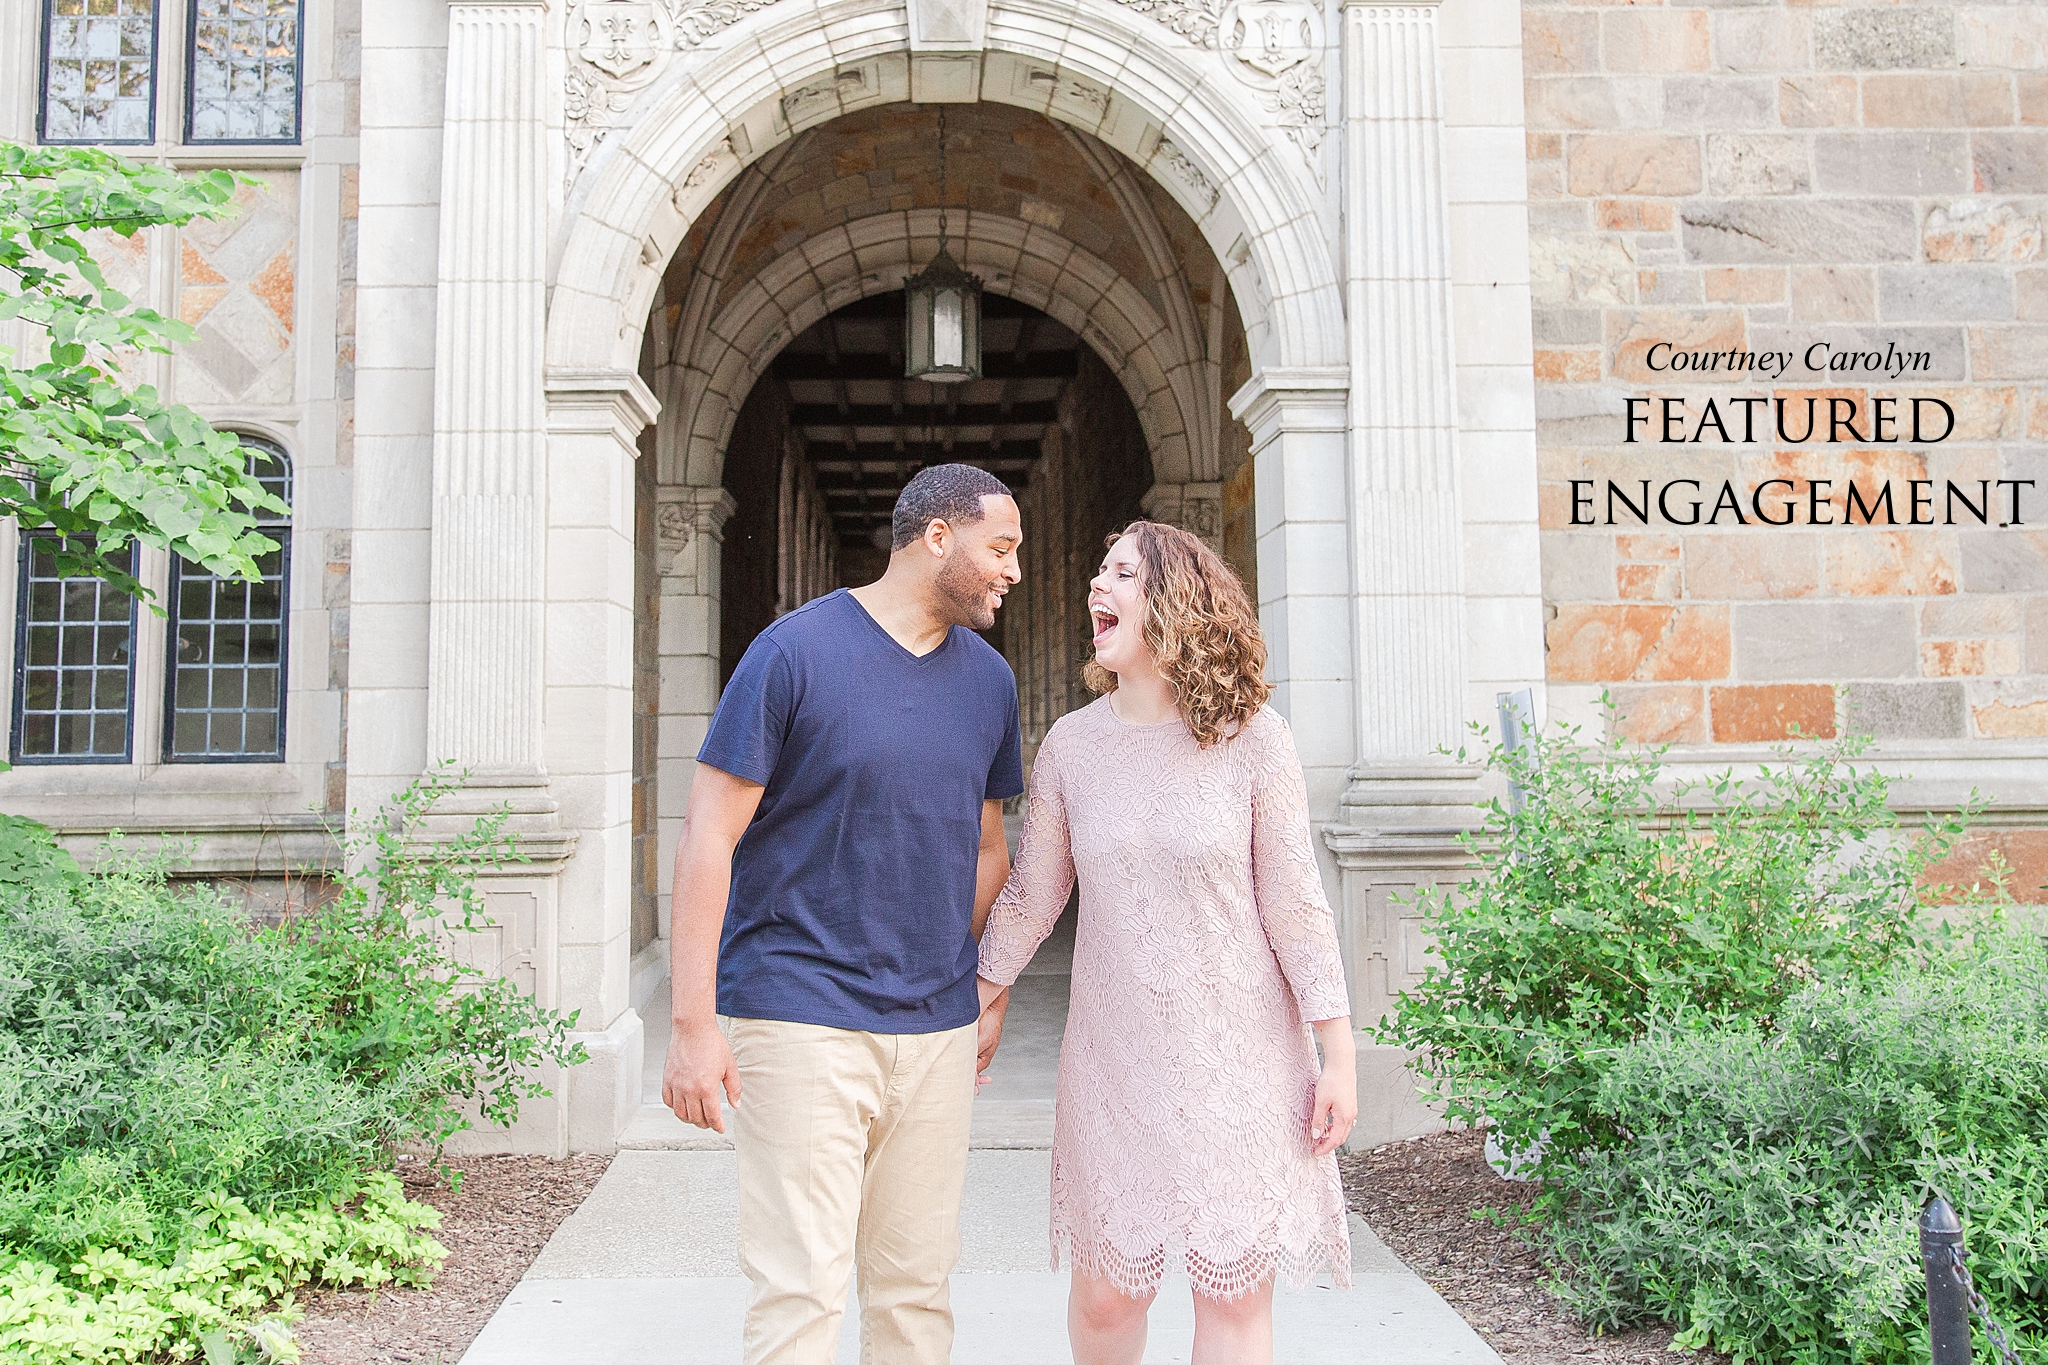 joyful-college-campus-engagement-photography-at-university-of-michigan-in-ann-arbor-mi-by-courtney-carolyn-photography_0027.jpg